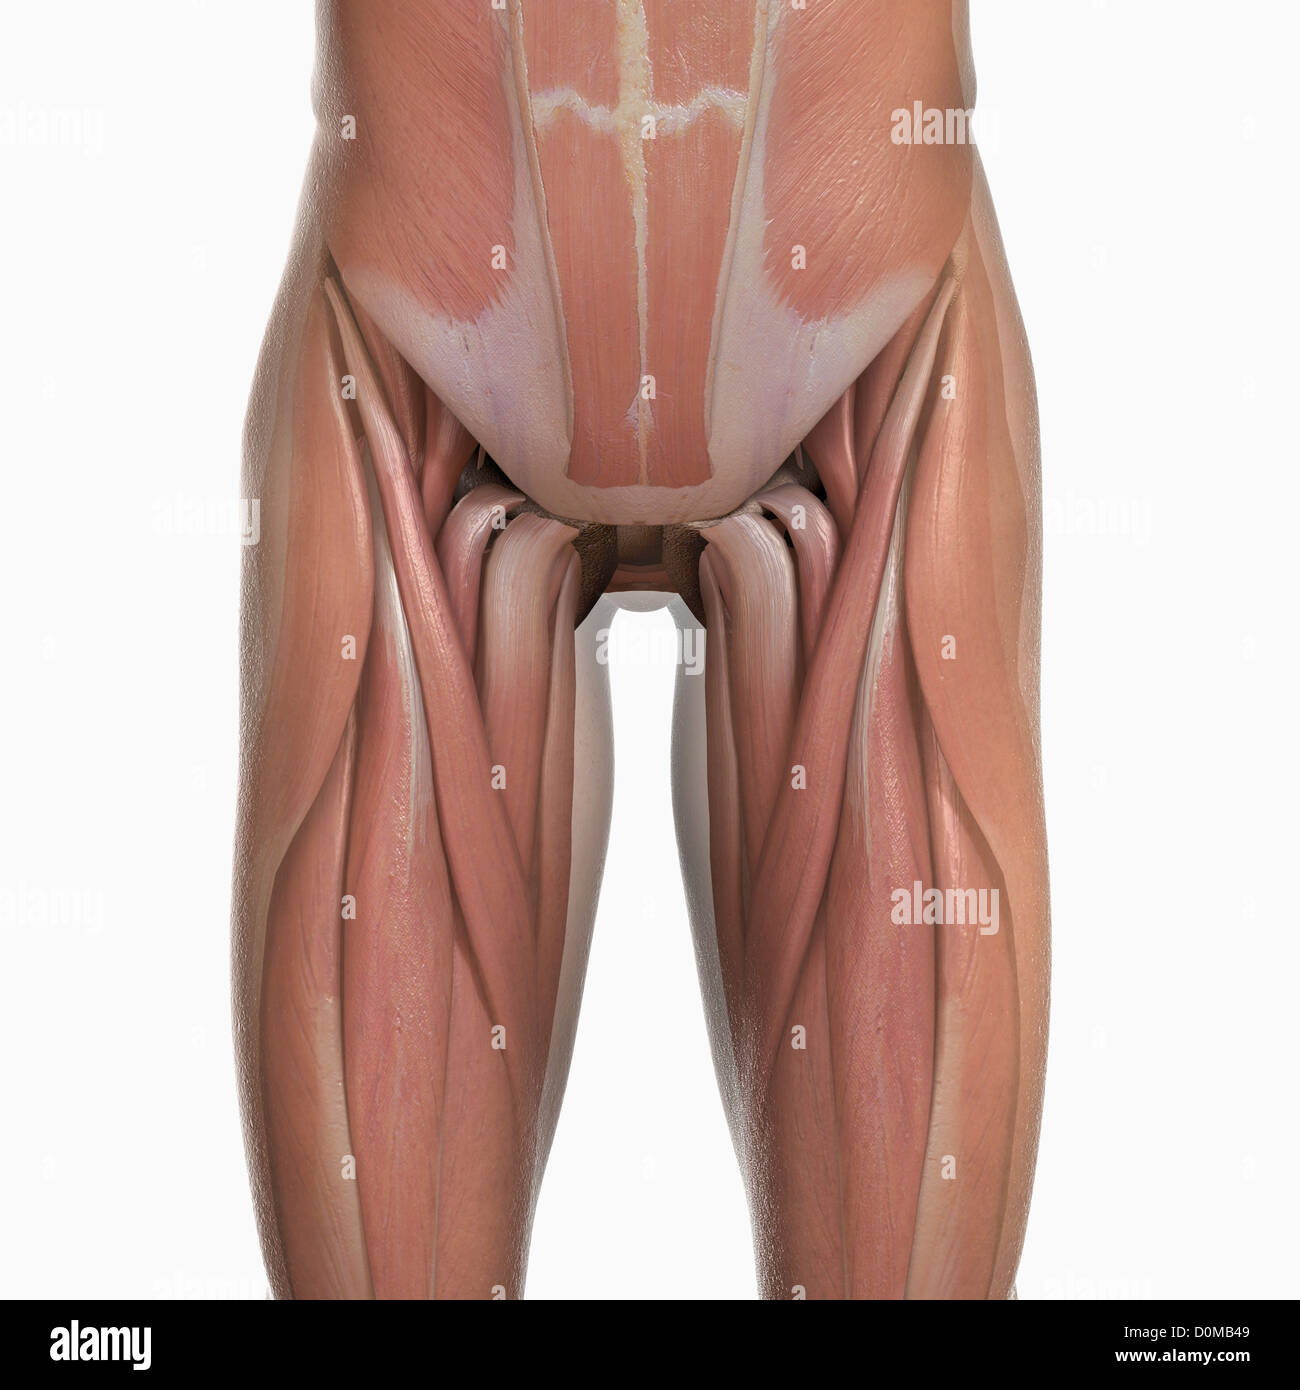 Anatomical model showing the human pelvis muscles Stock Photo ...